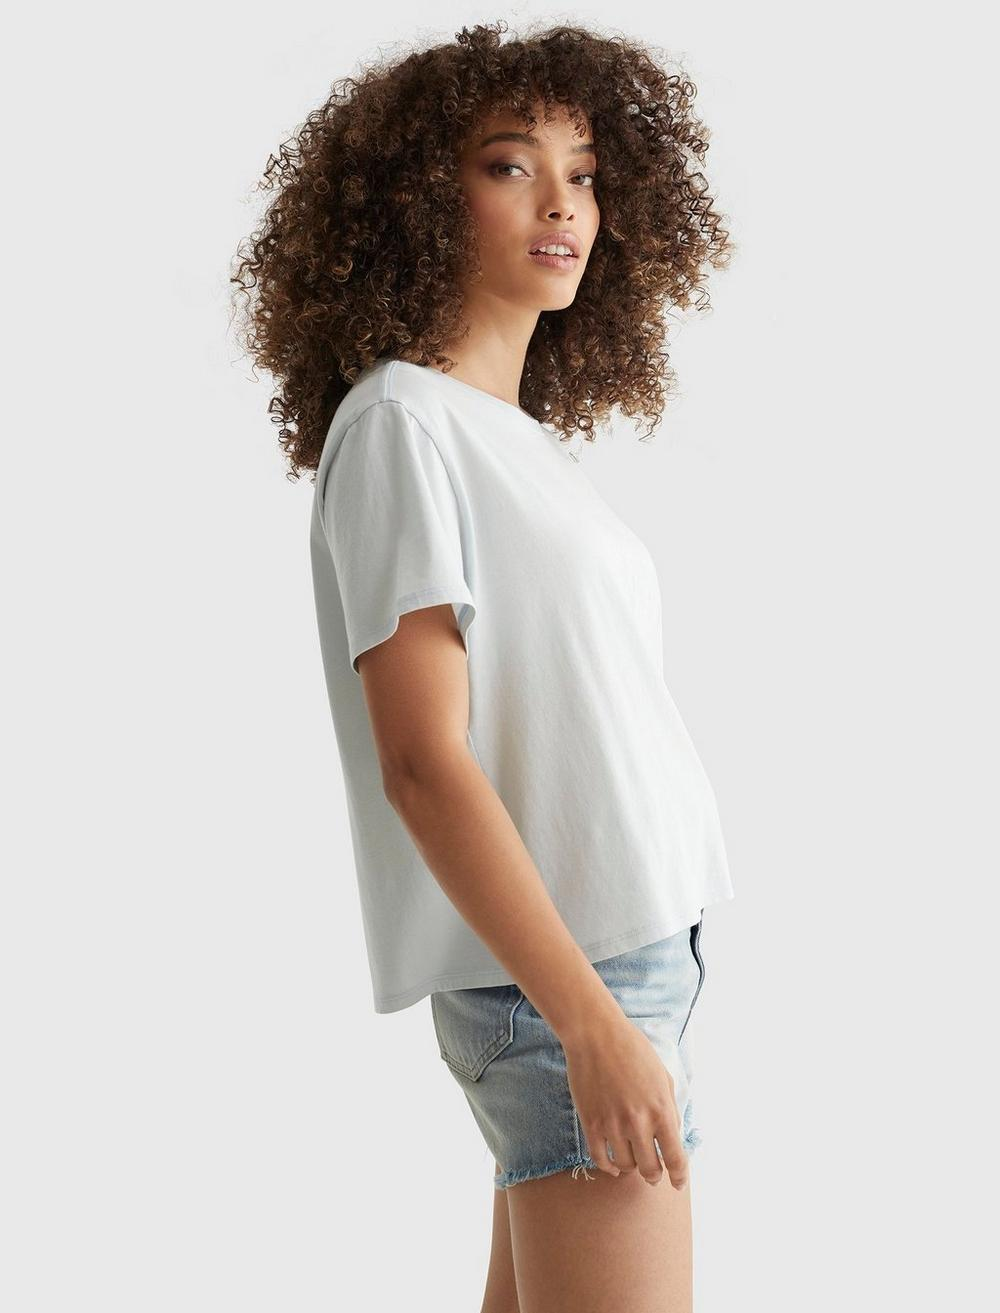 EMBROIDERED MIS FLORAL CROP TEE, image 3